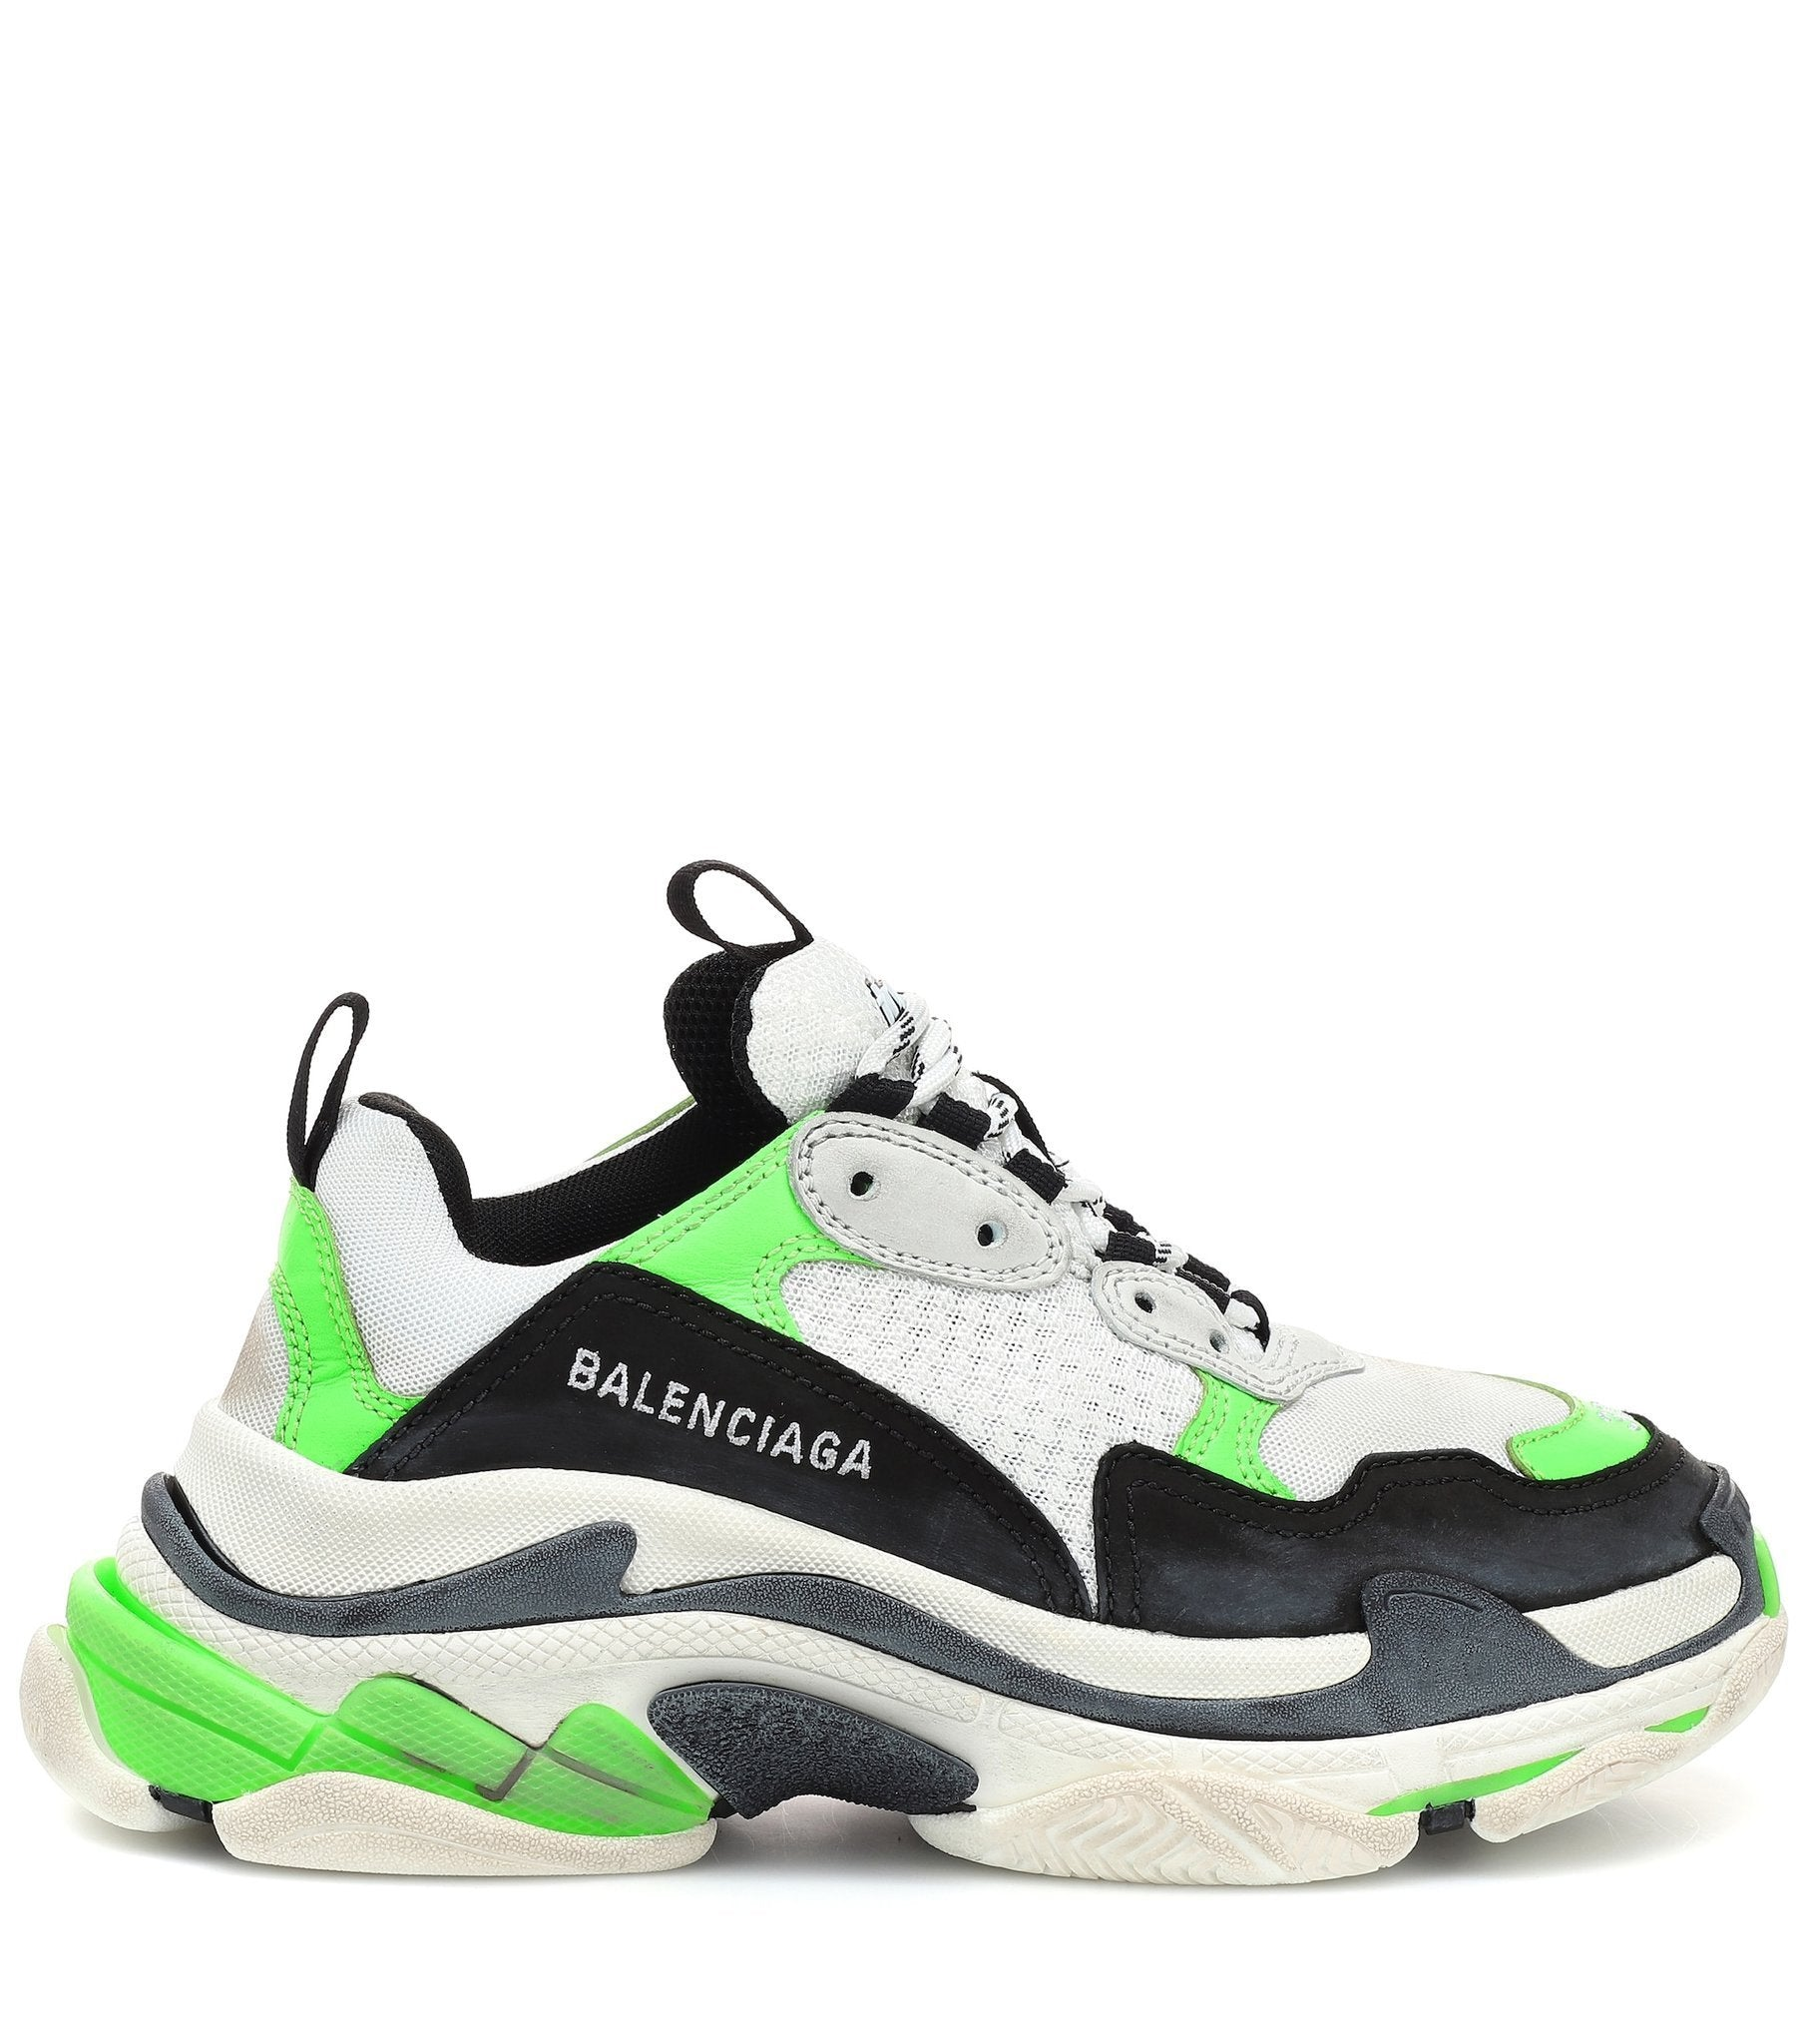 Balenciaga triple s italy vs china what s the difference between the